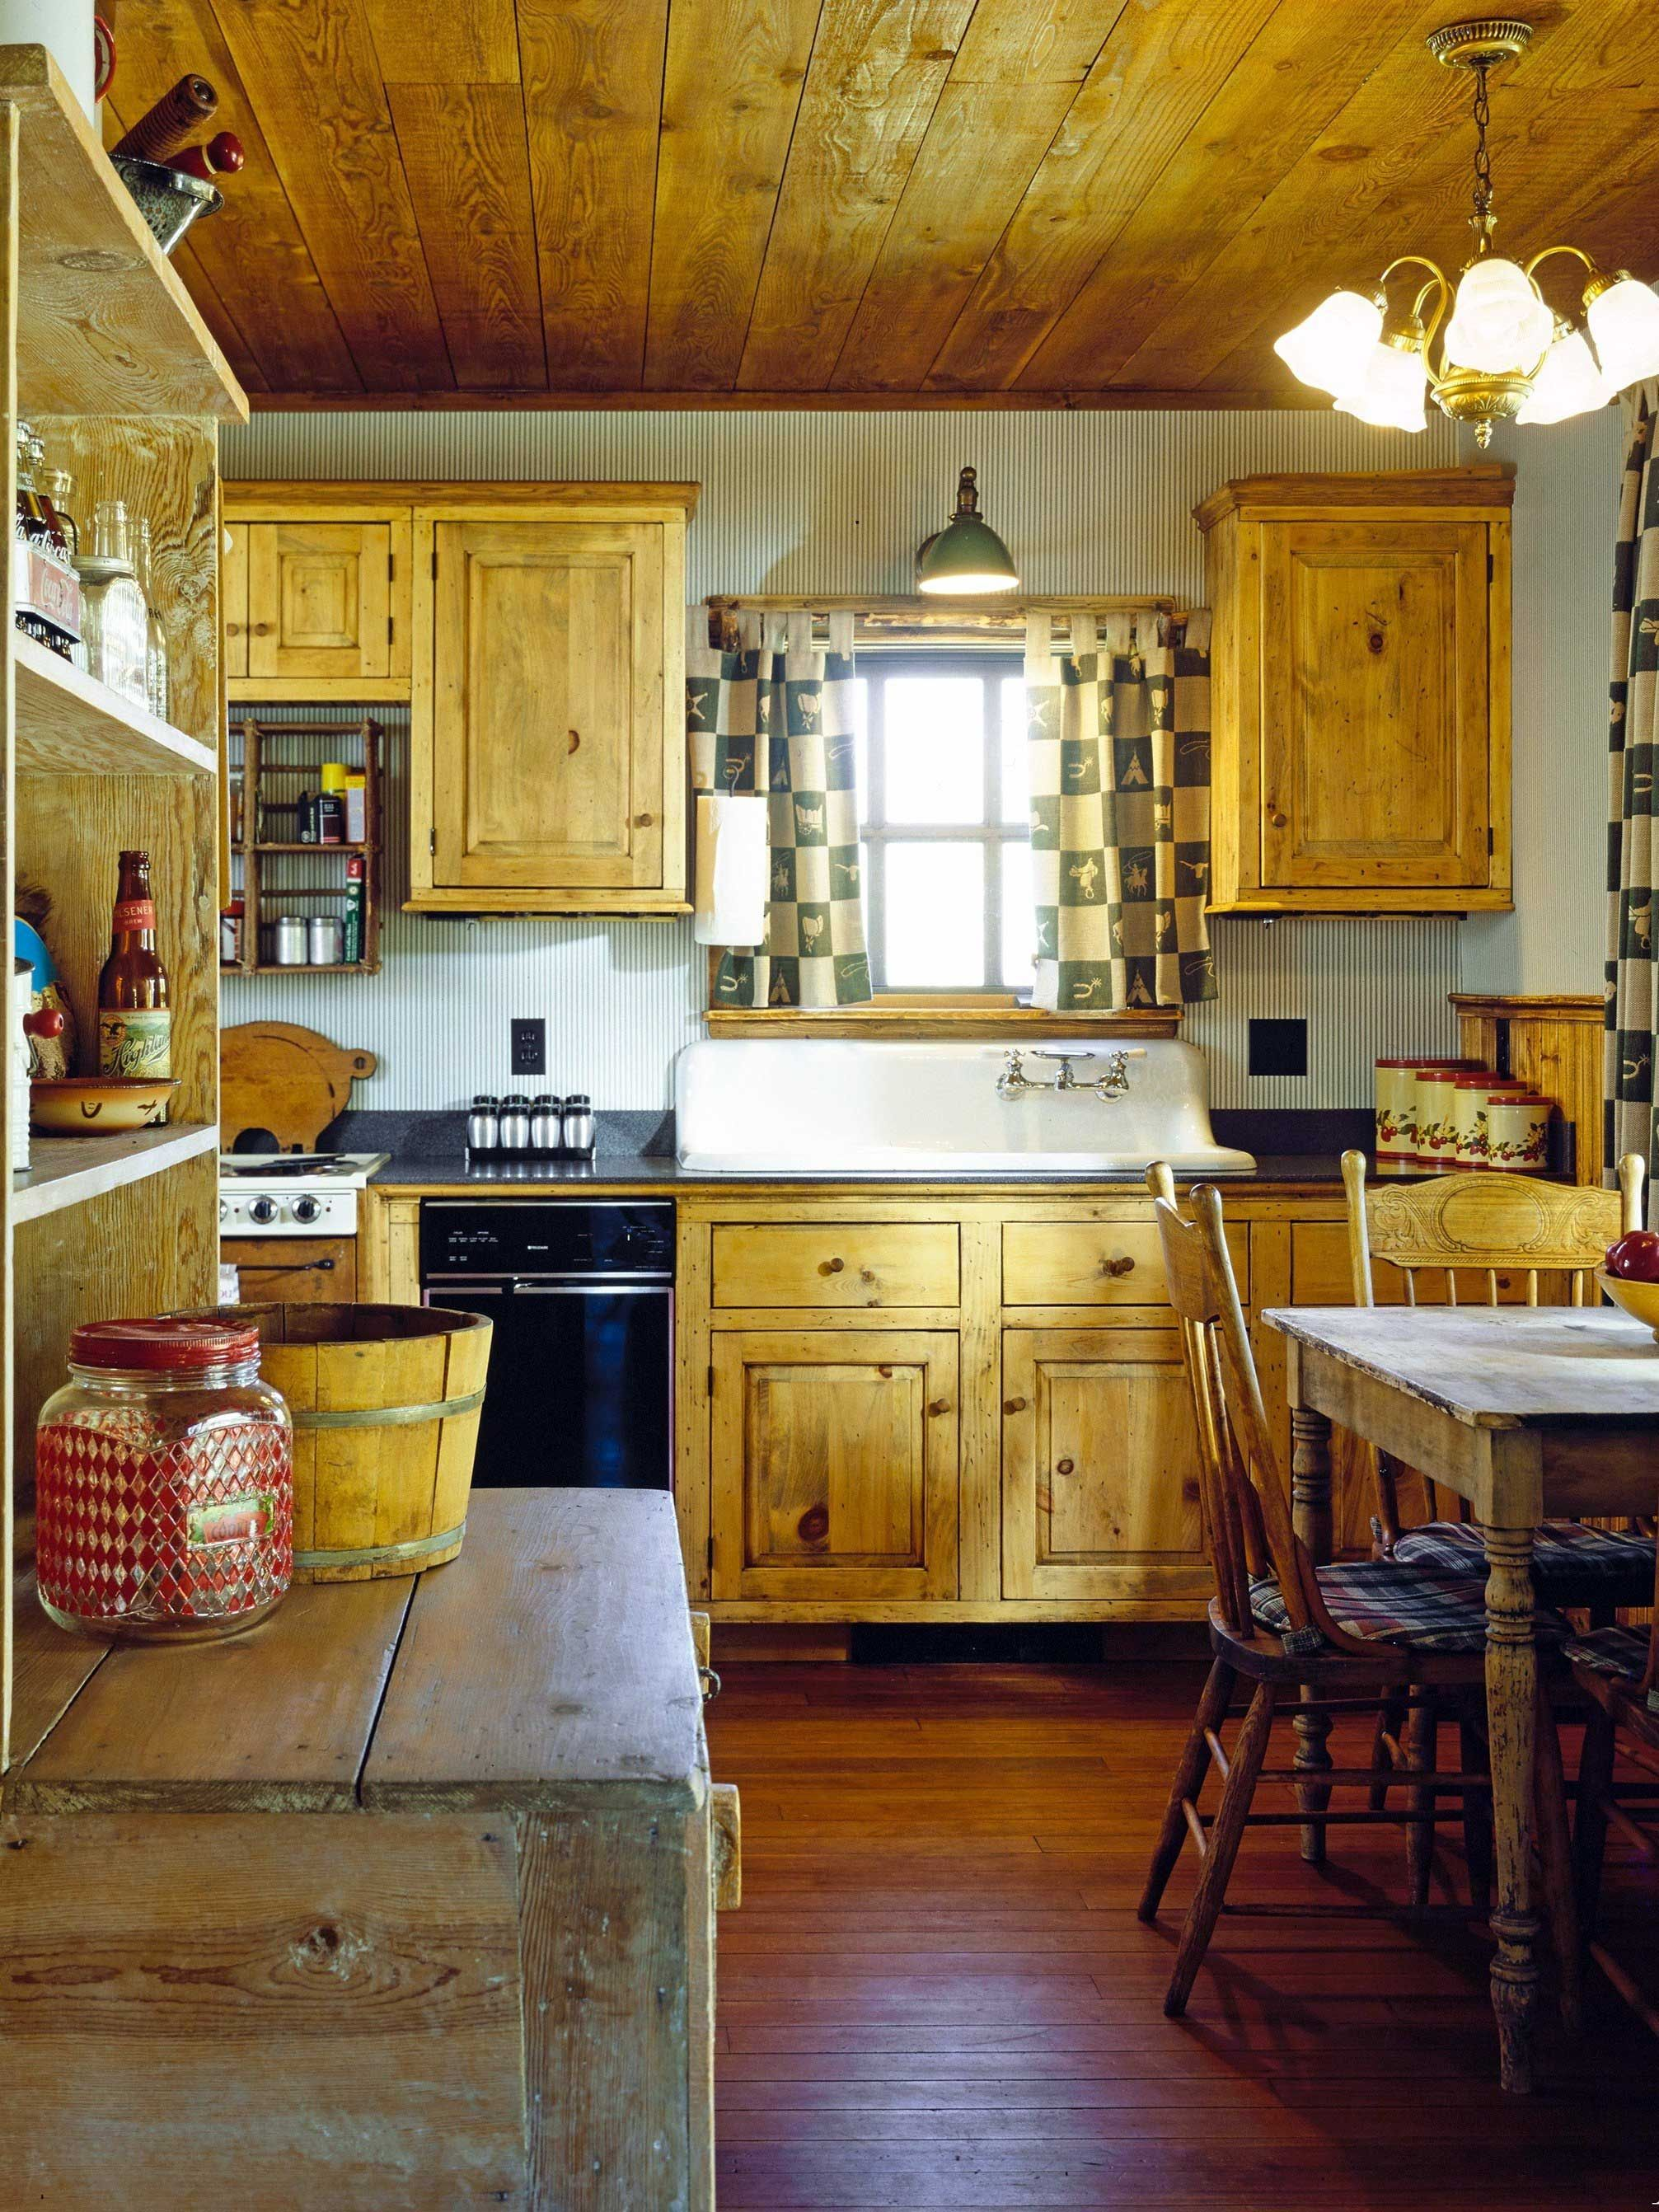 52 Amazing Tuscan Arches Design With Images Kitchen Design Trends Home Trends Kitchen Design